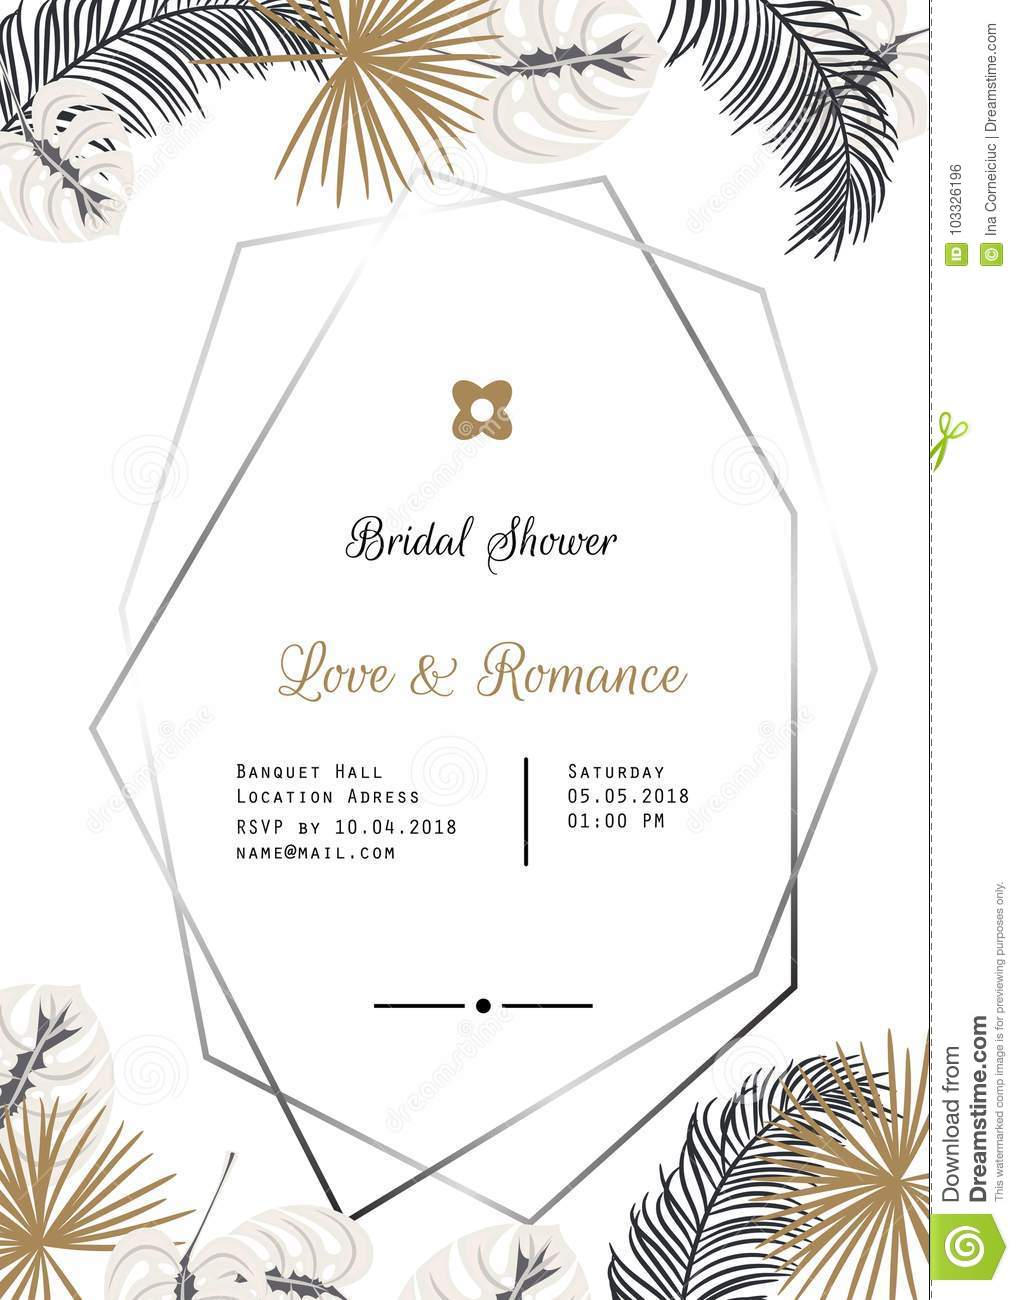 Wedding Invitation Vector Template Design Stock Vector